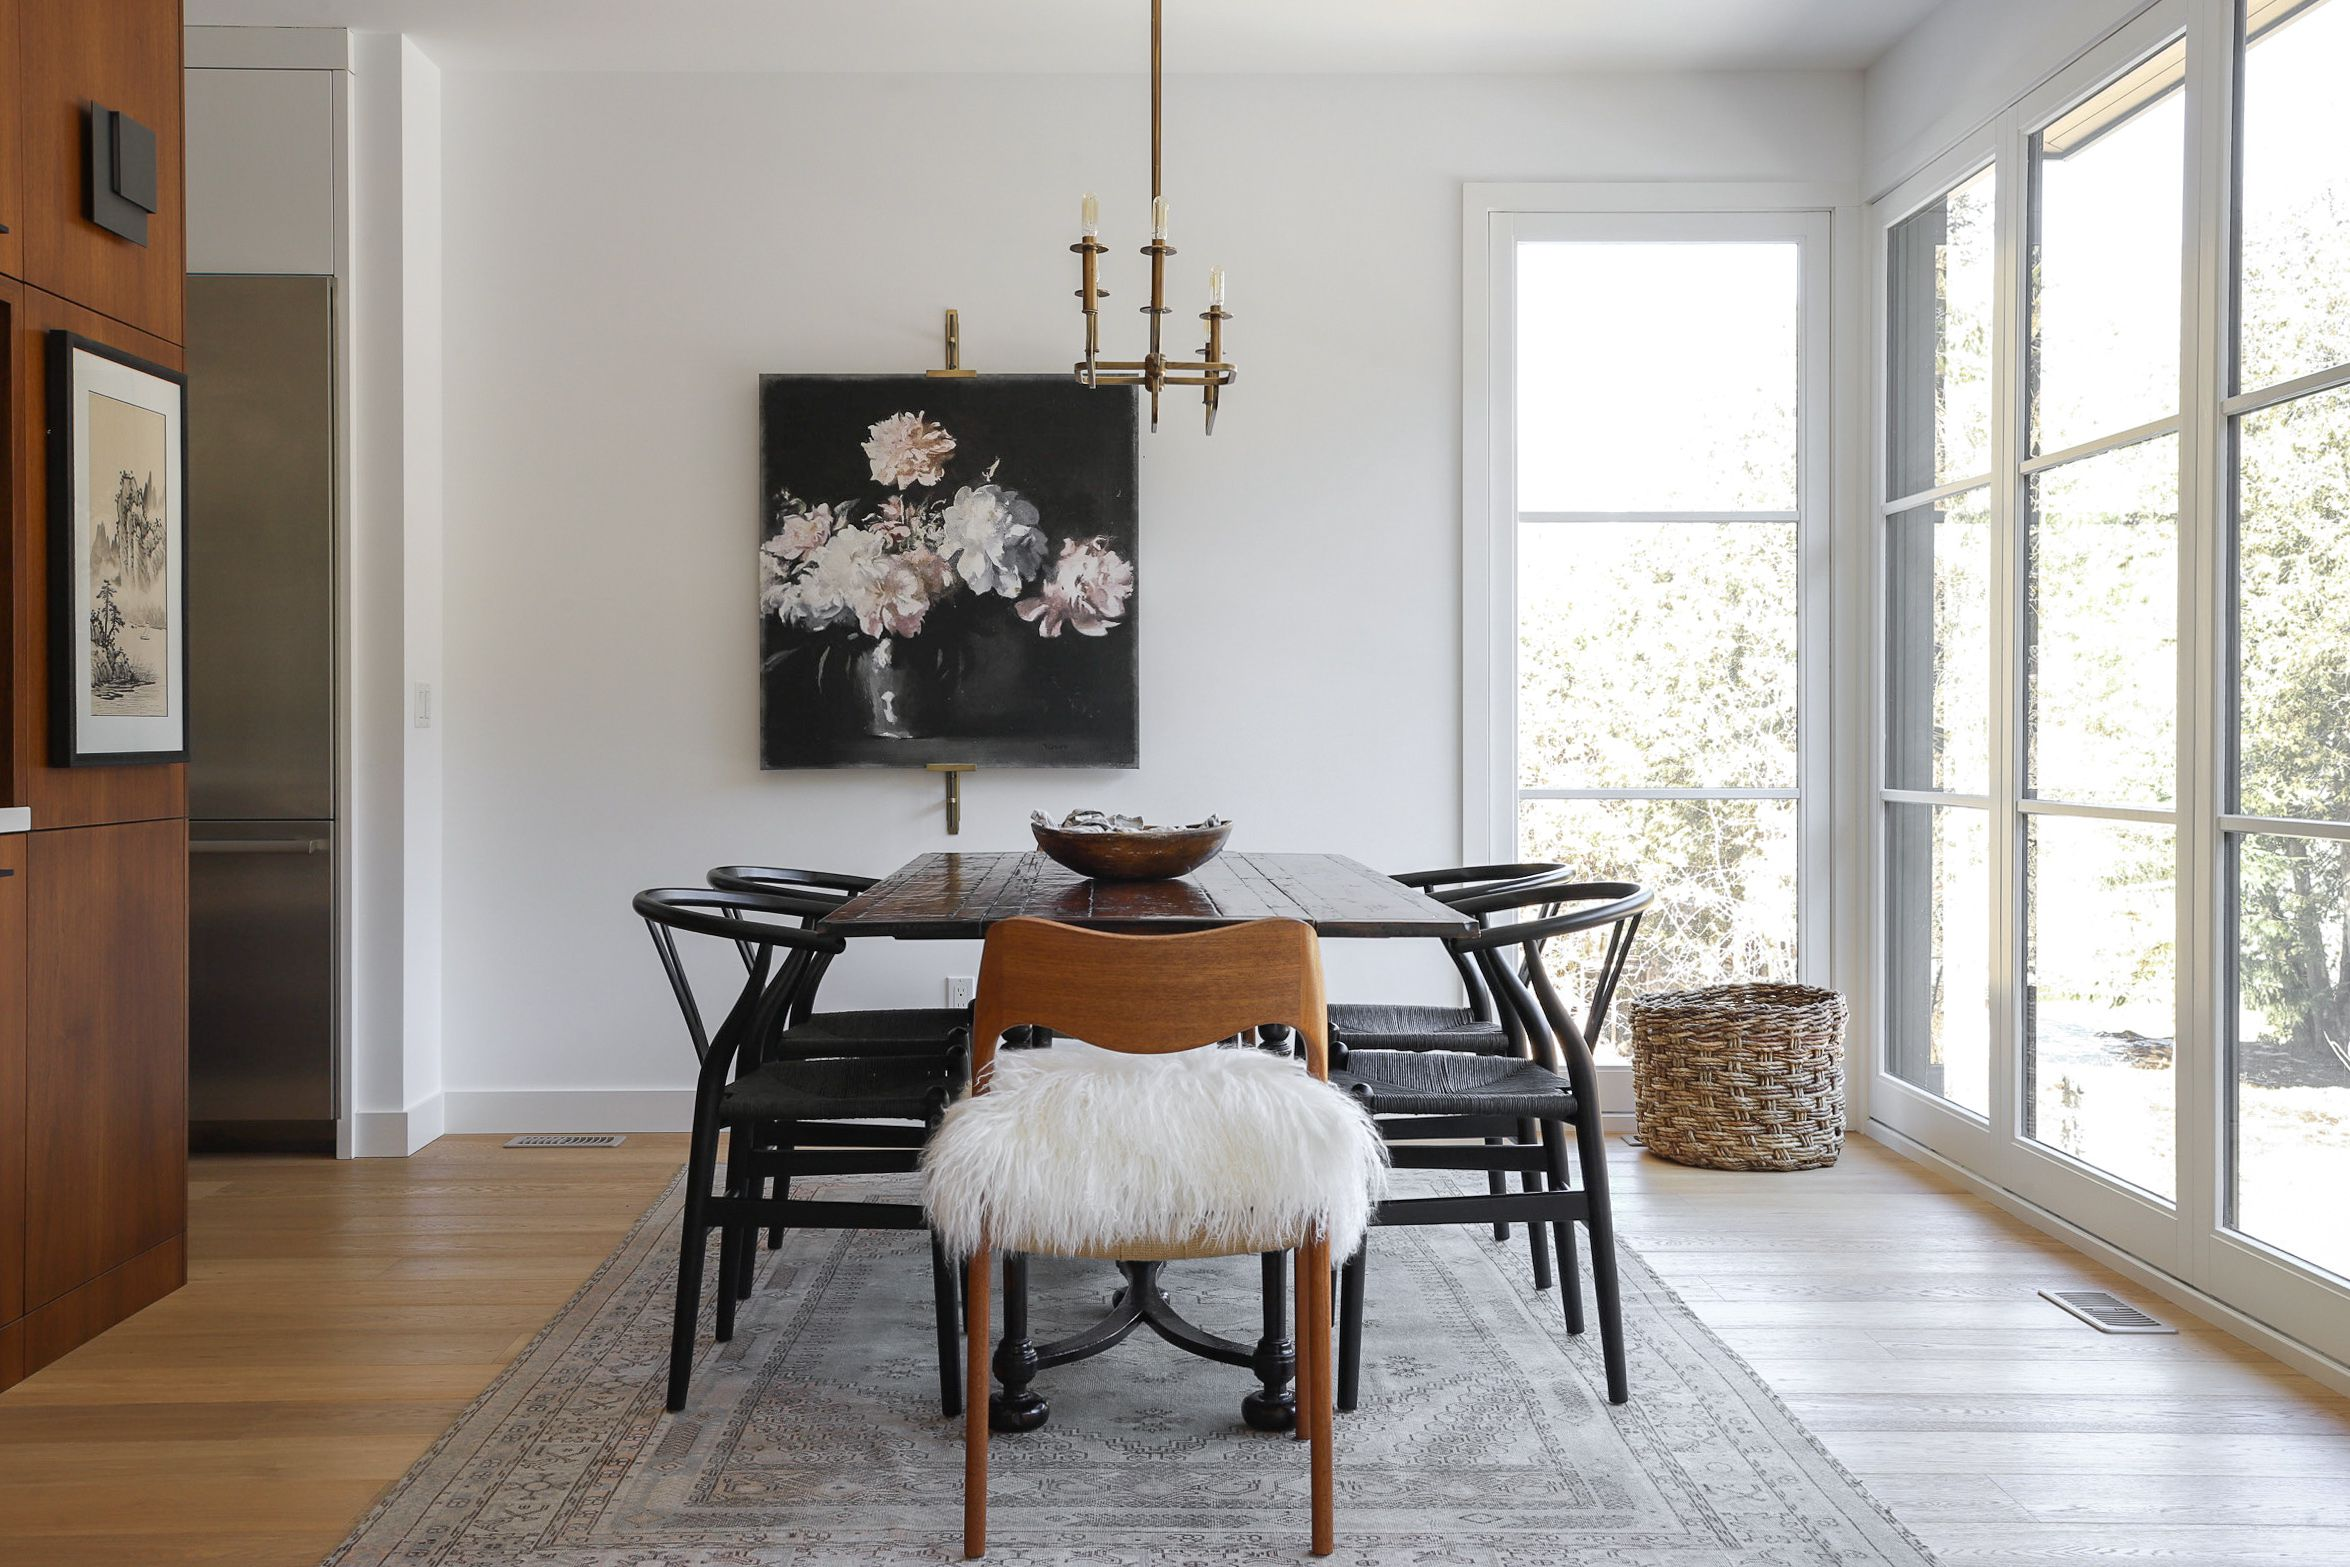 15 Modern Dining Room Ideas, Homes Without Dining Room